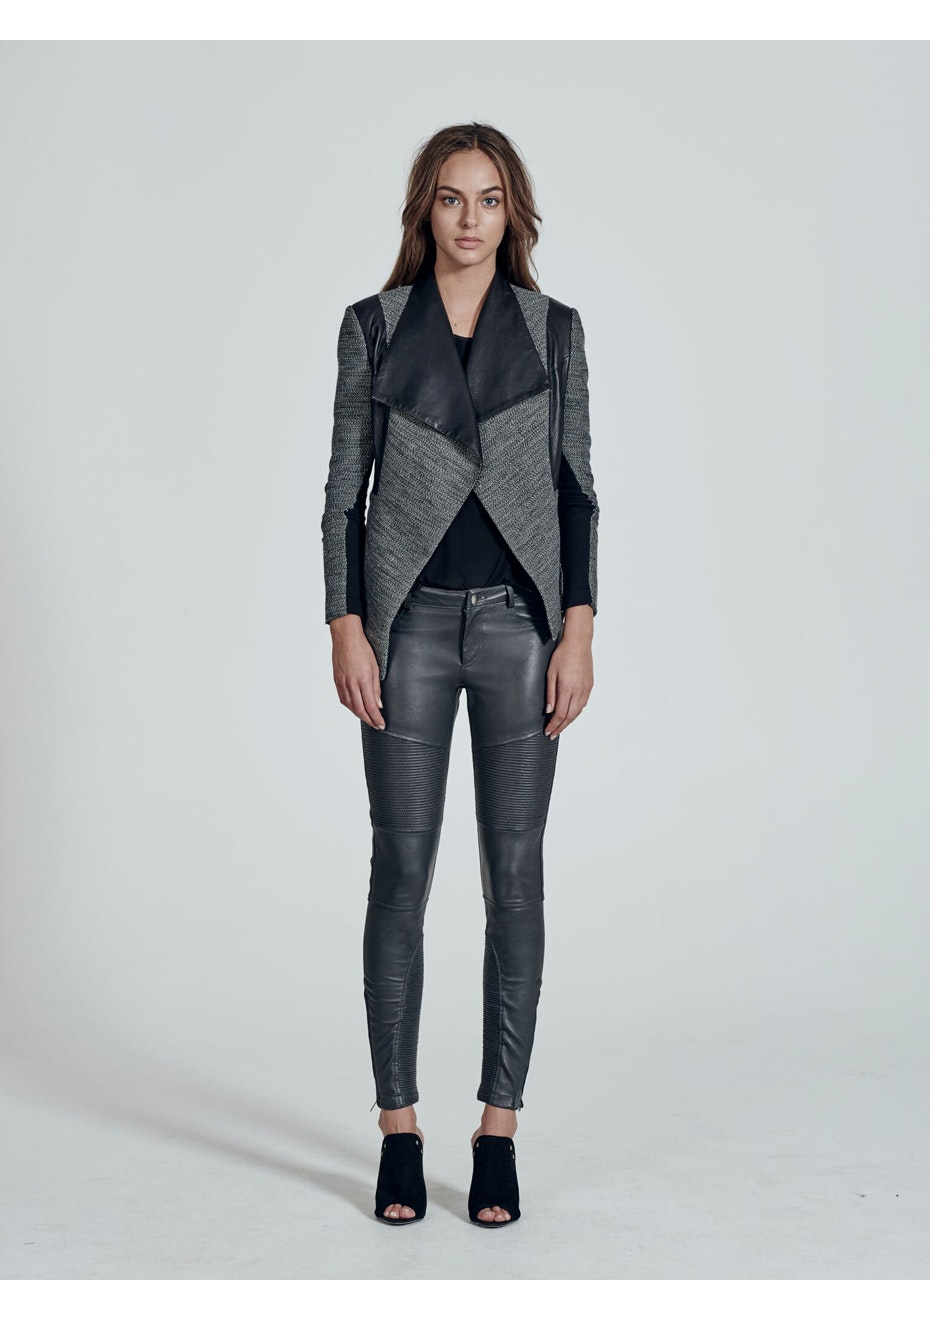 West 14th - Isabella Drape Jacket - Mix Material - White, Grey, Black